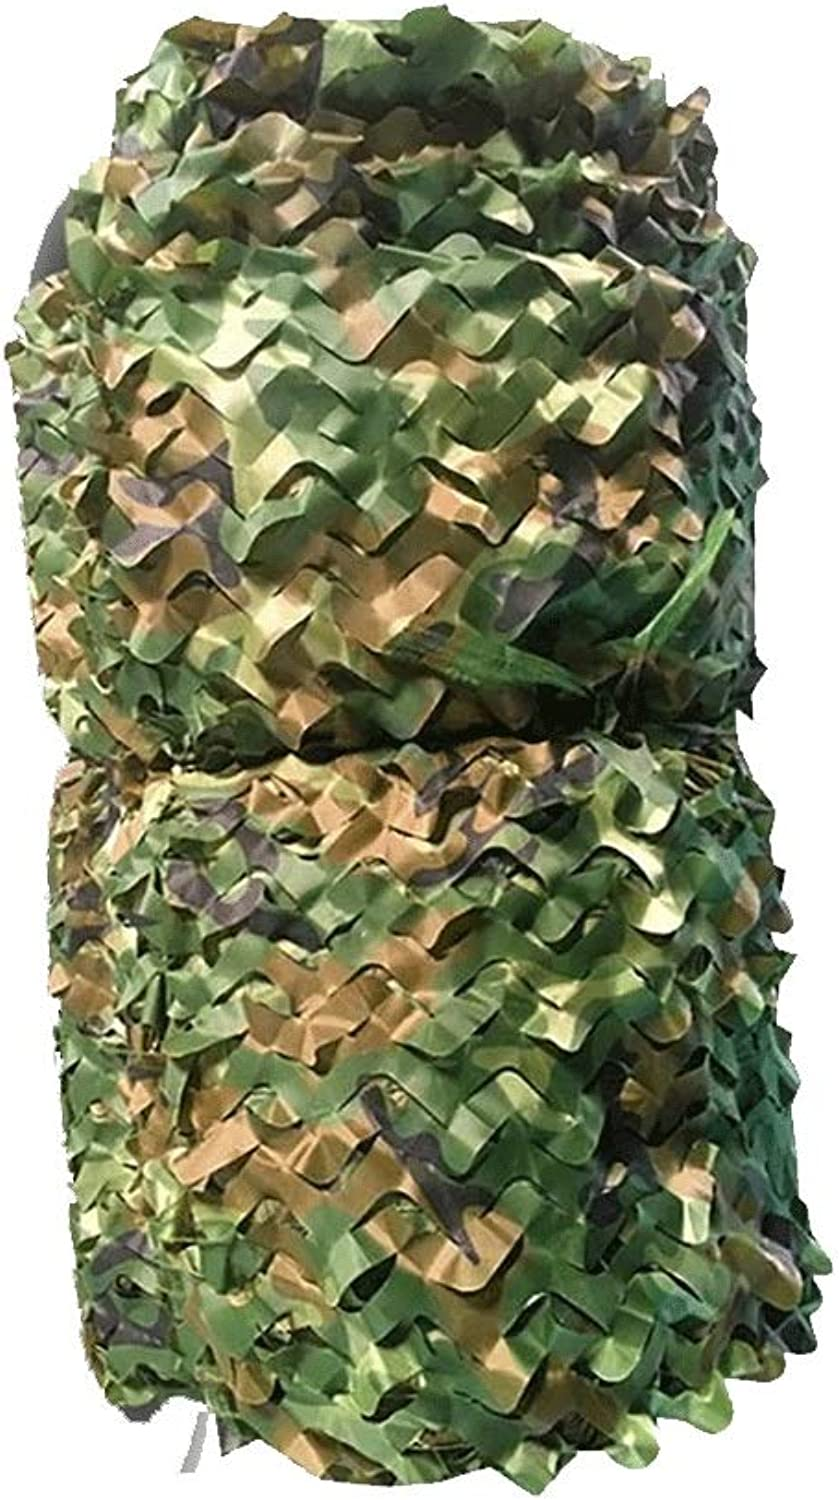 Gaoye Camouflage Net, Camouflage Net for Camping Military Hunting Shooting Sunscreen Nets Woodland Camo Netting Multiple (color   3x4m)